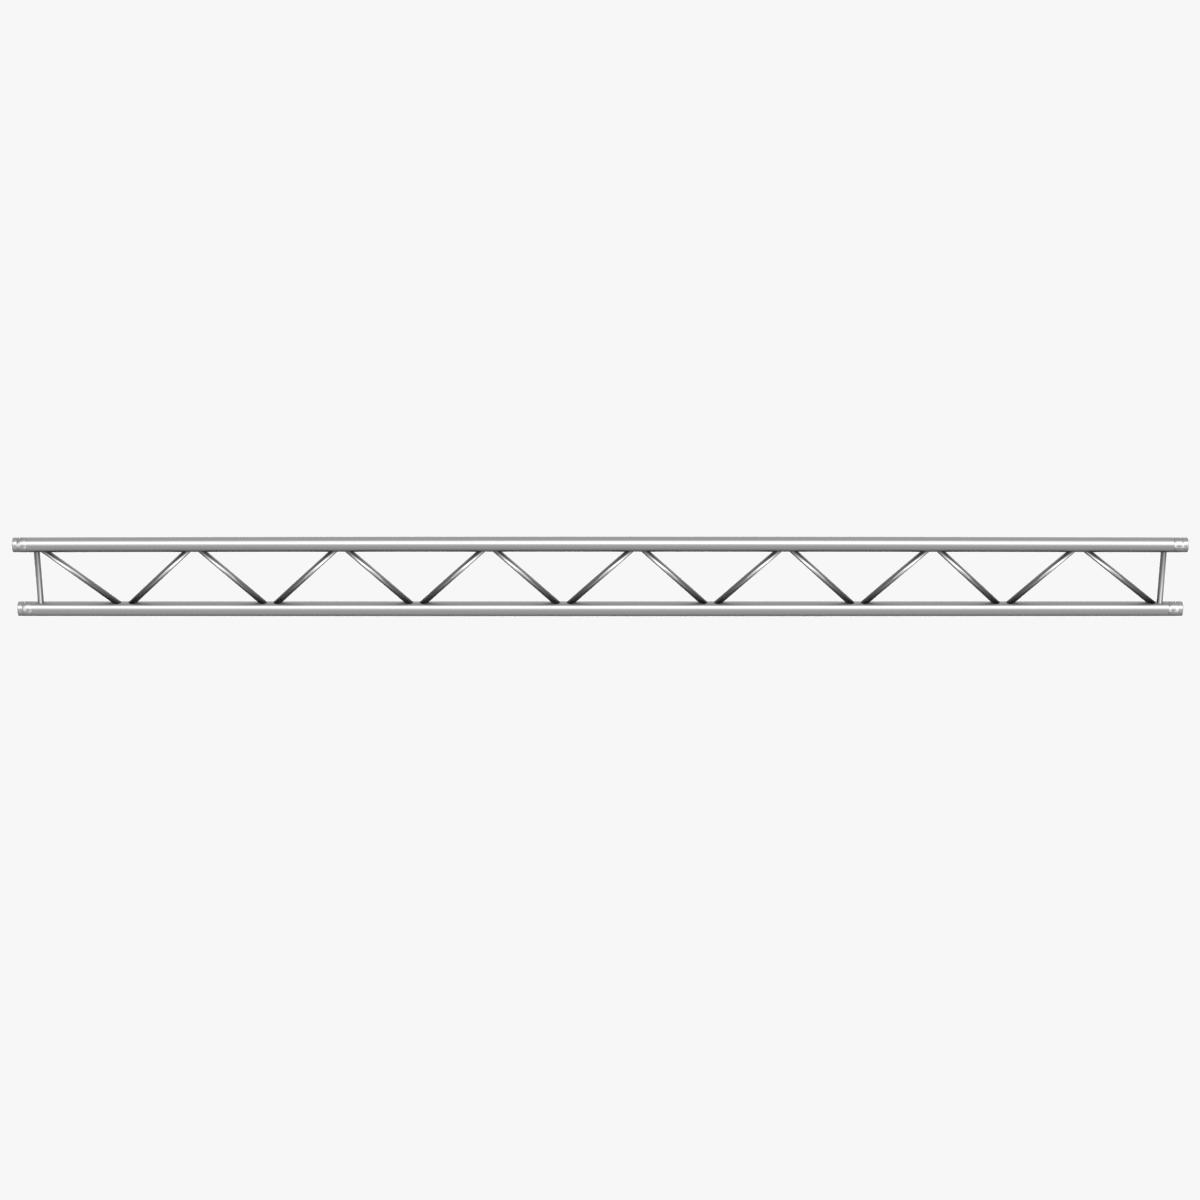 beam trusses (collection 24 modular pieces) 3d model 3ds max dxf fbx bmp blend c4d dae other obj 268734